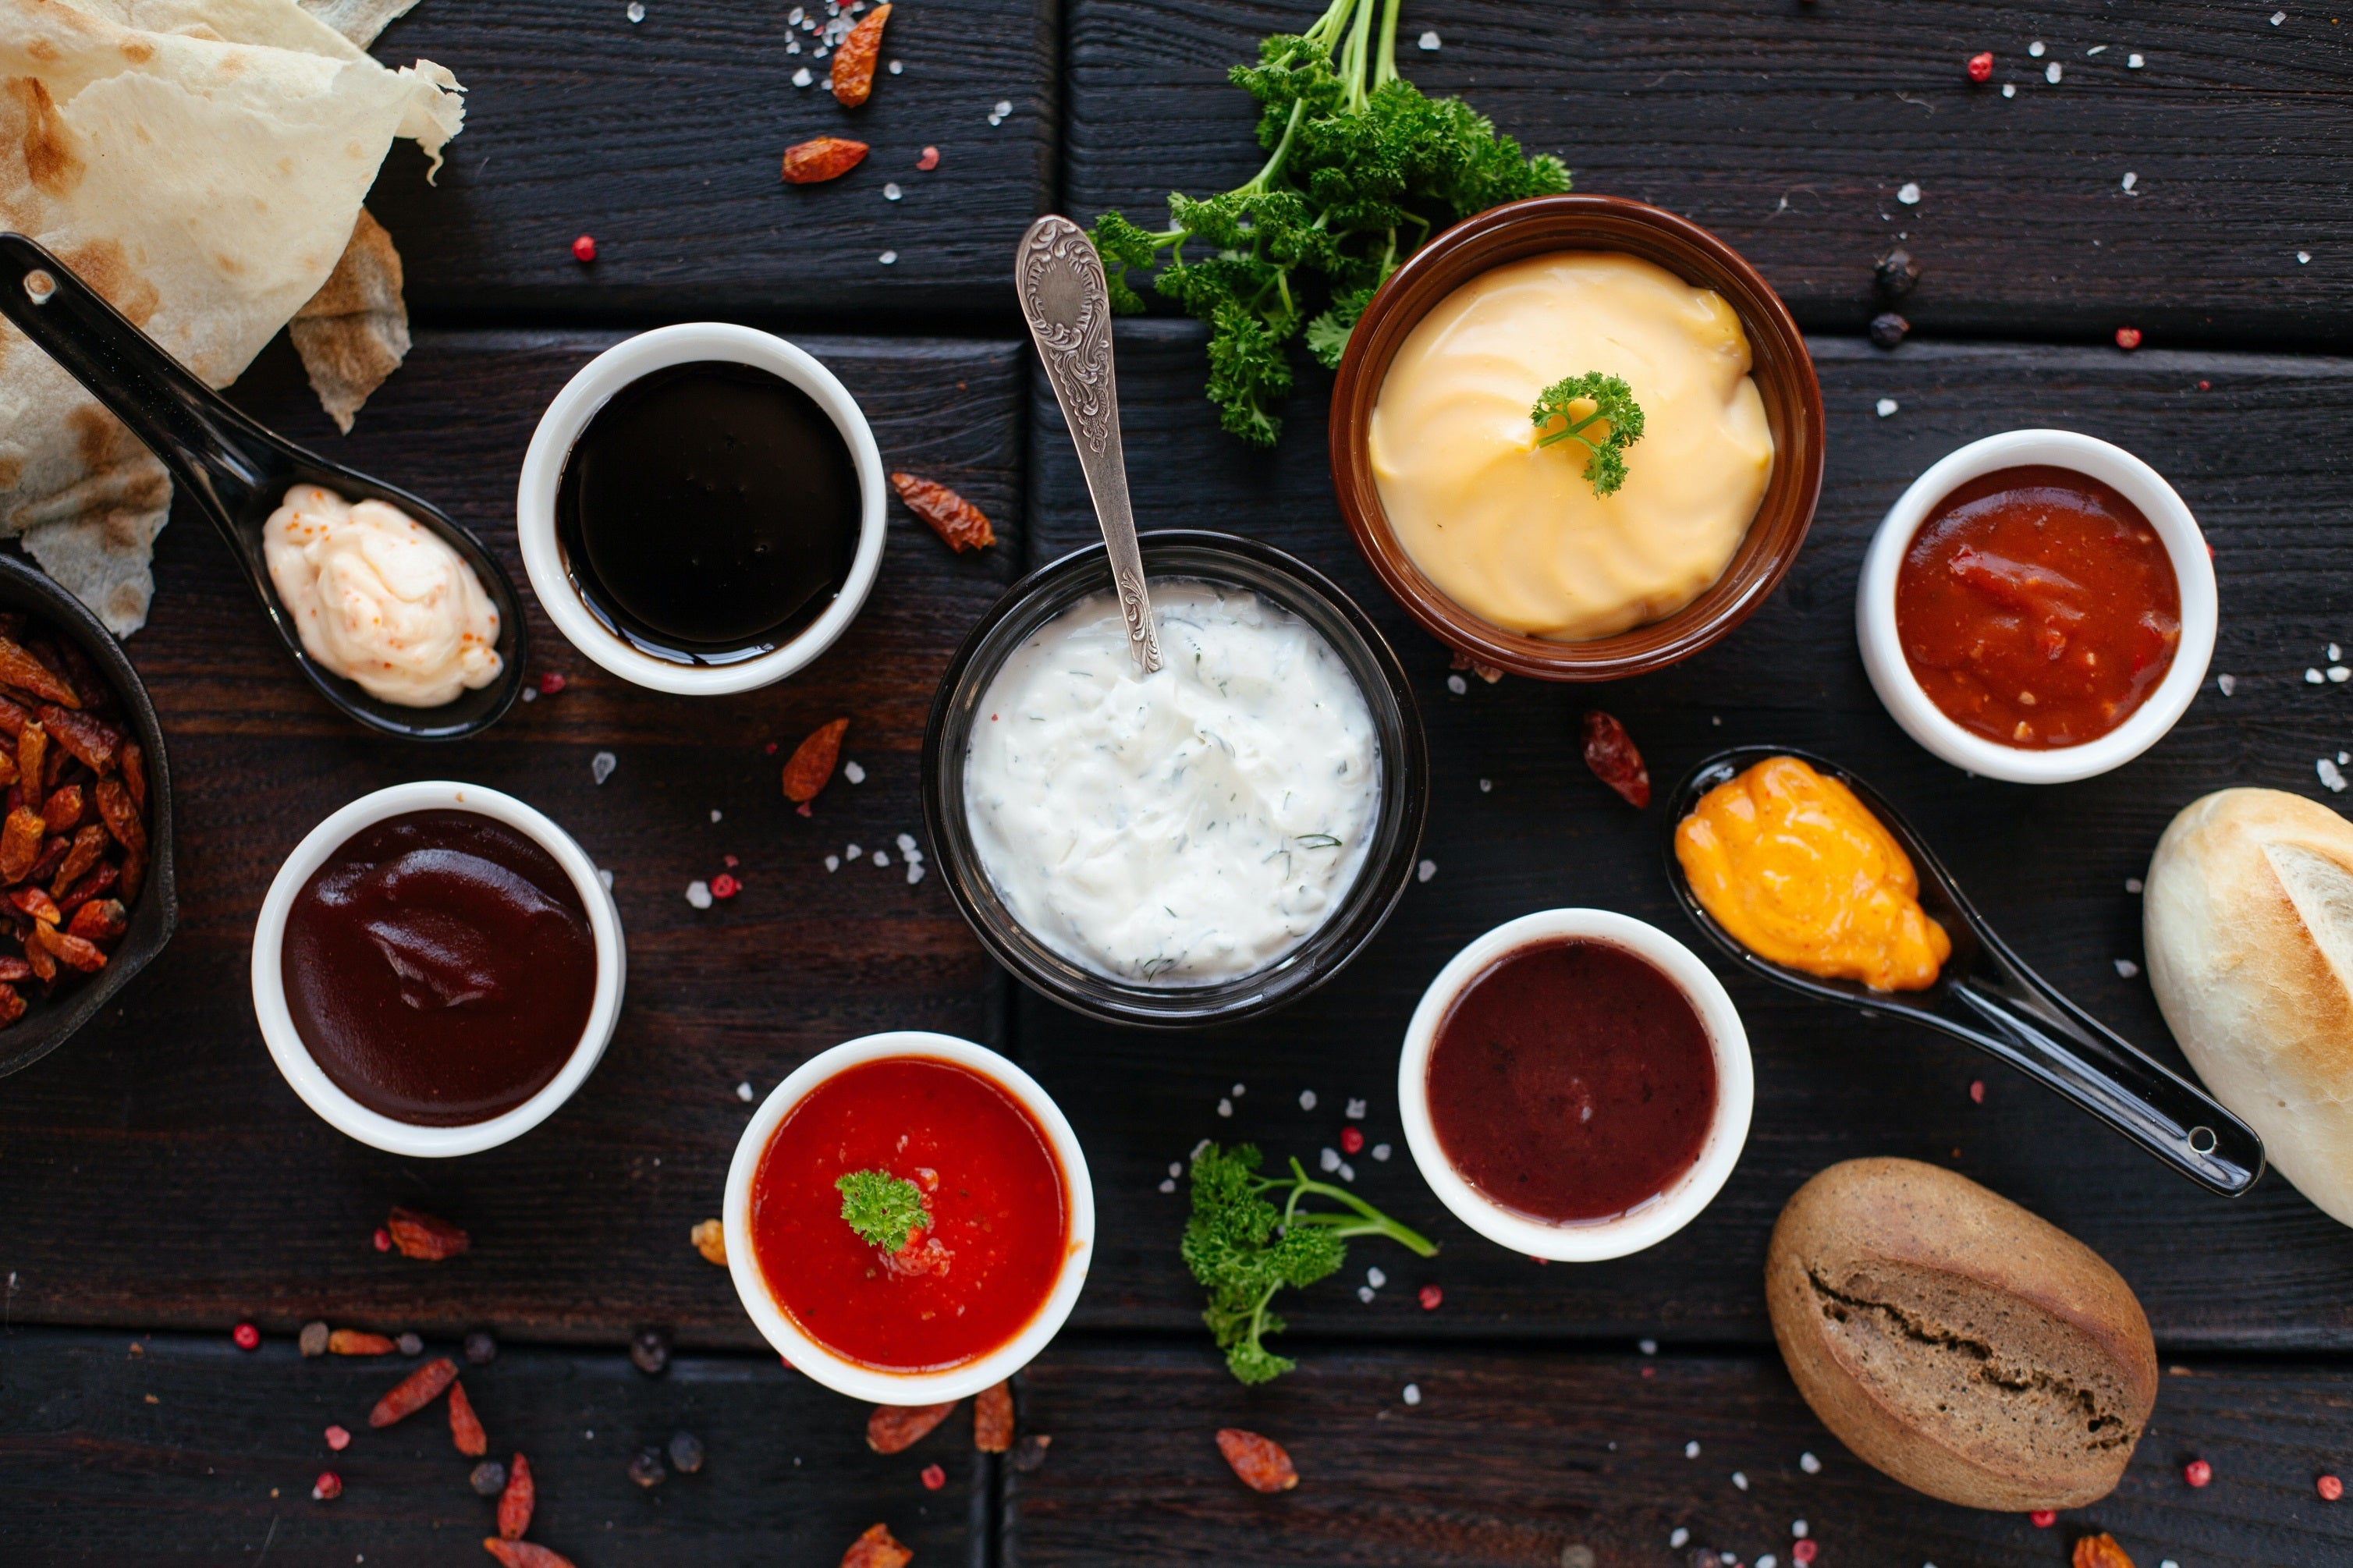 Homemade sauces